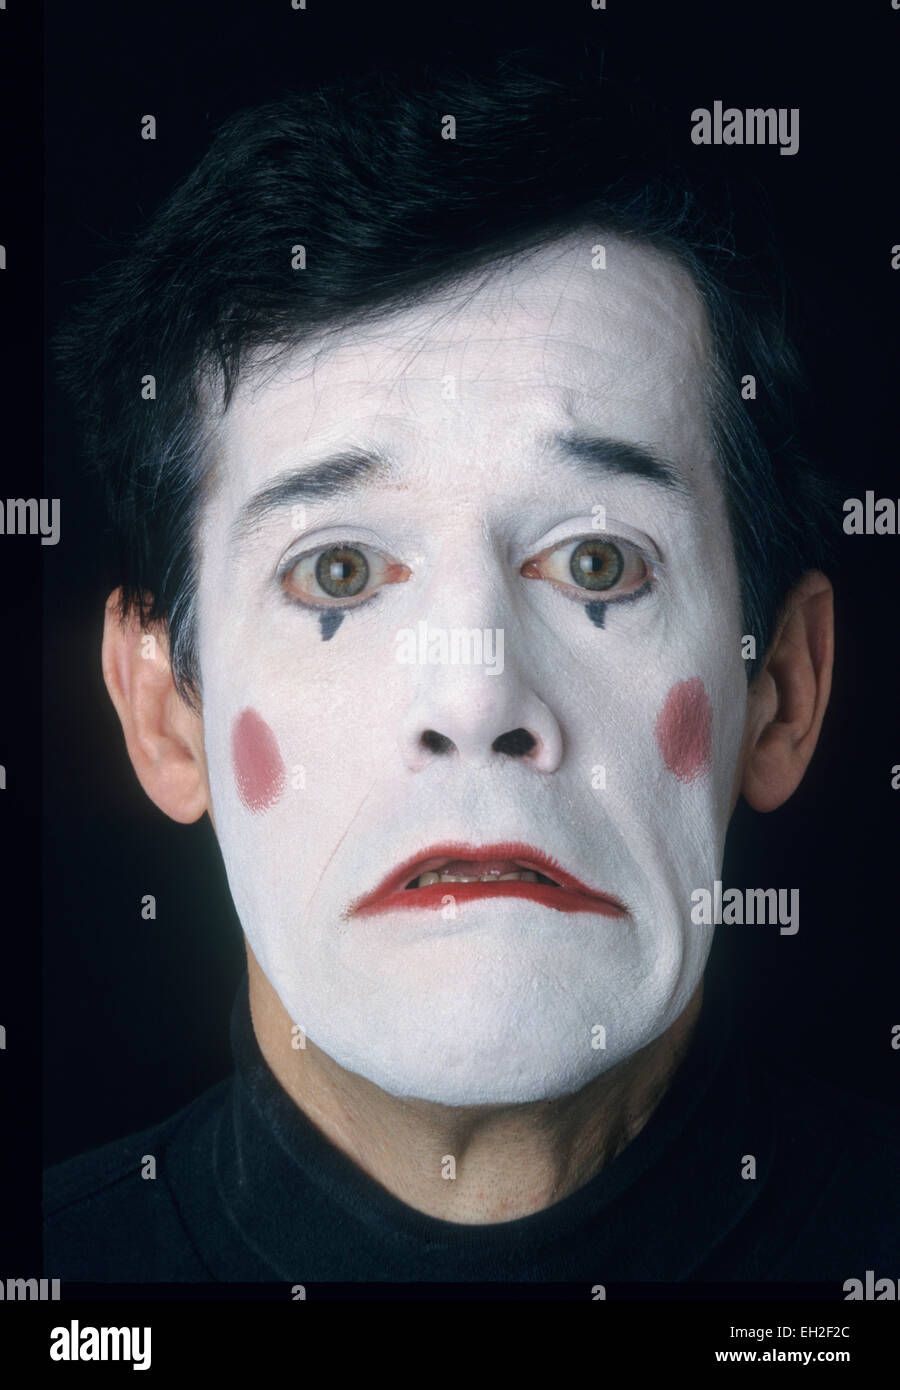 Mime, male, in white face, displaying fear or sadness Stock Photo